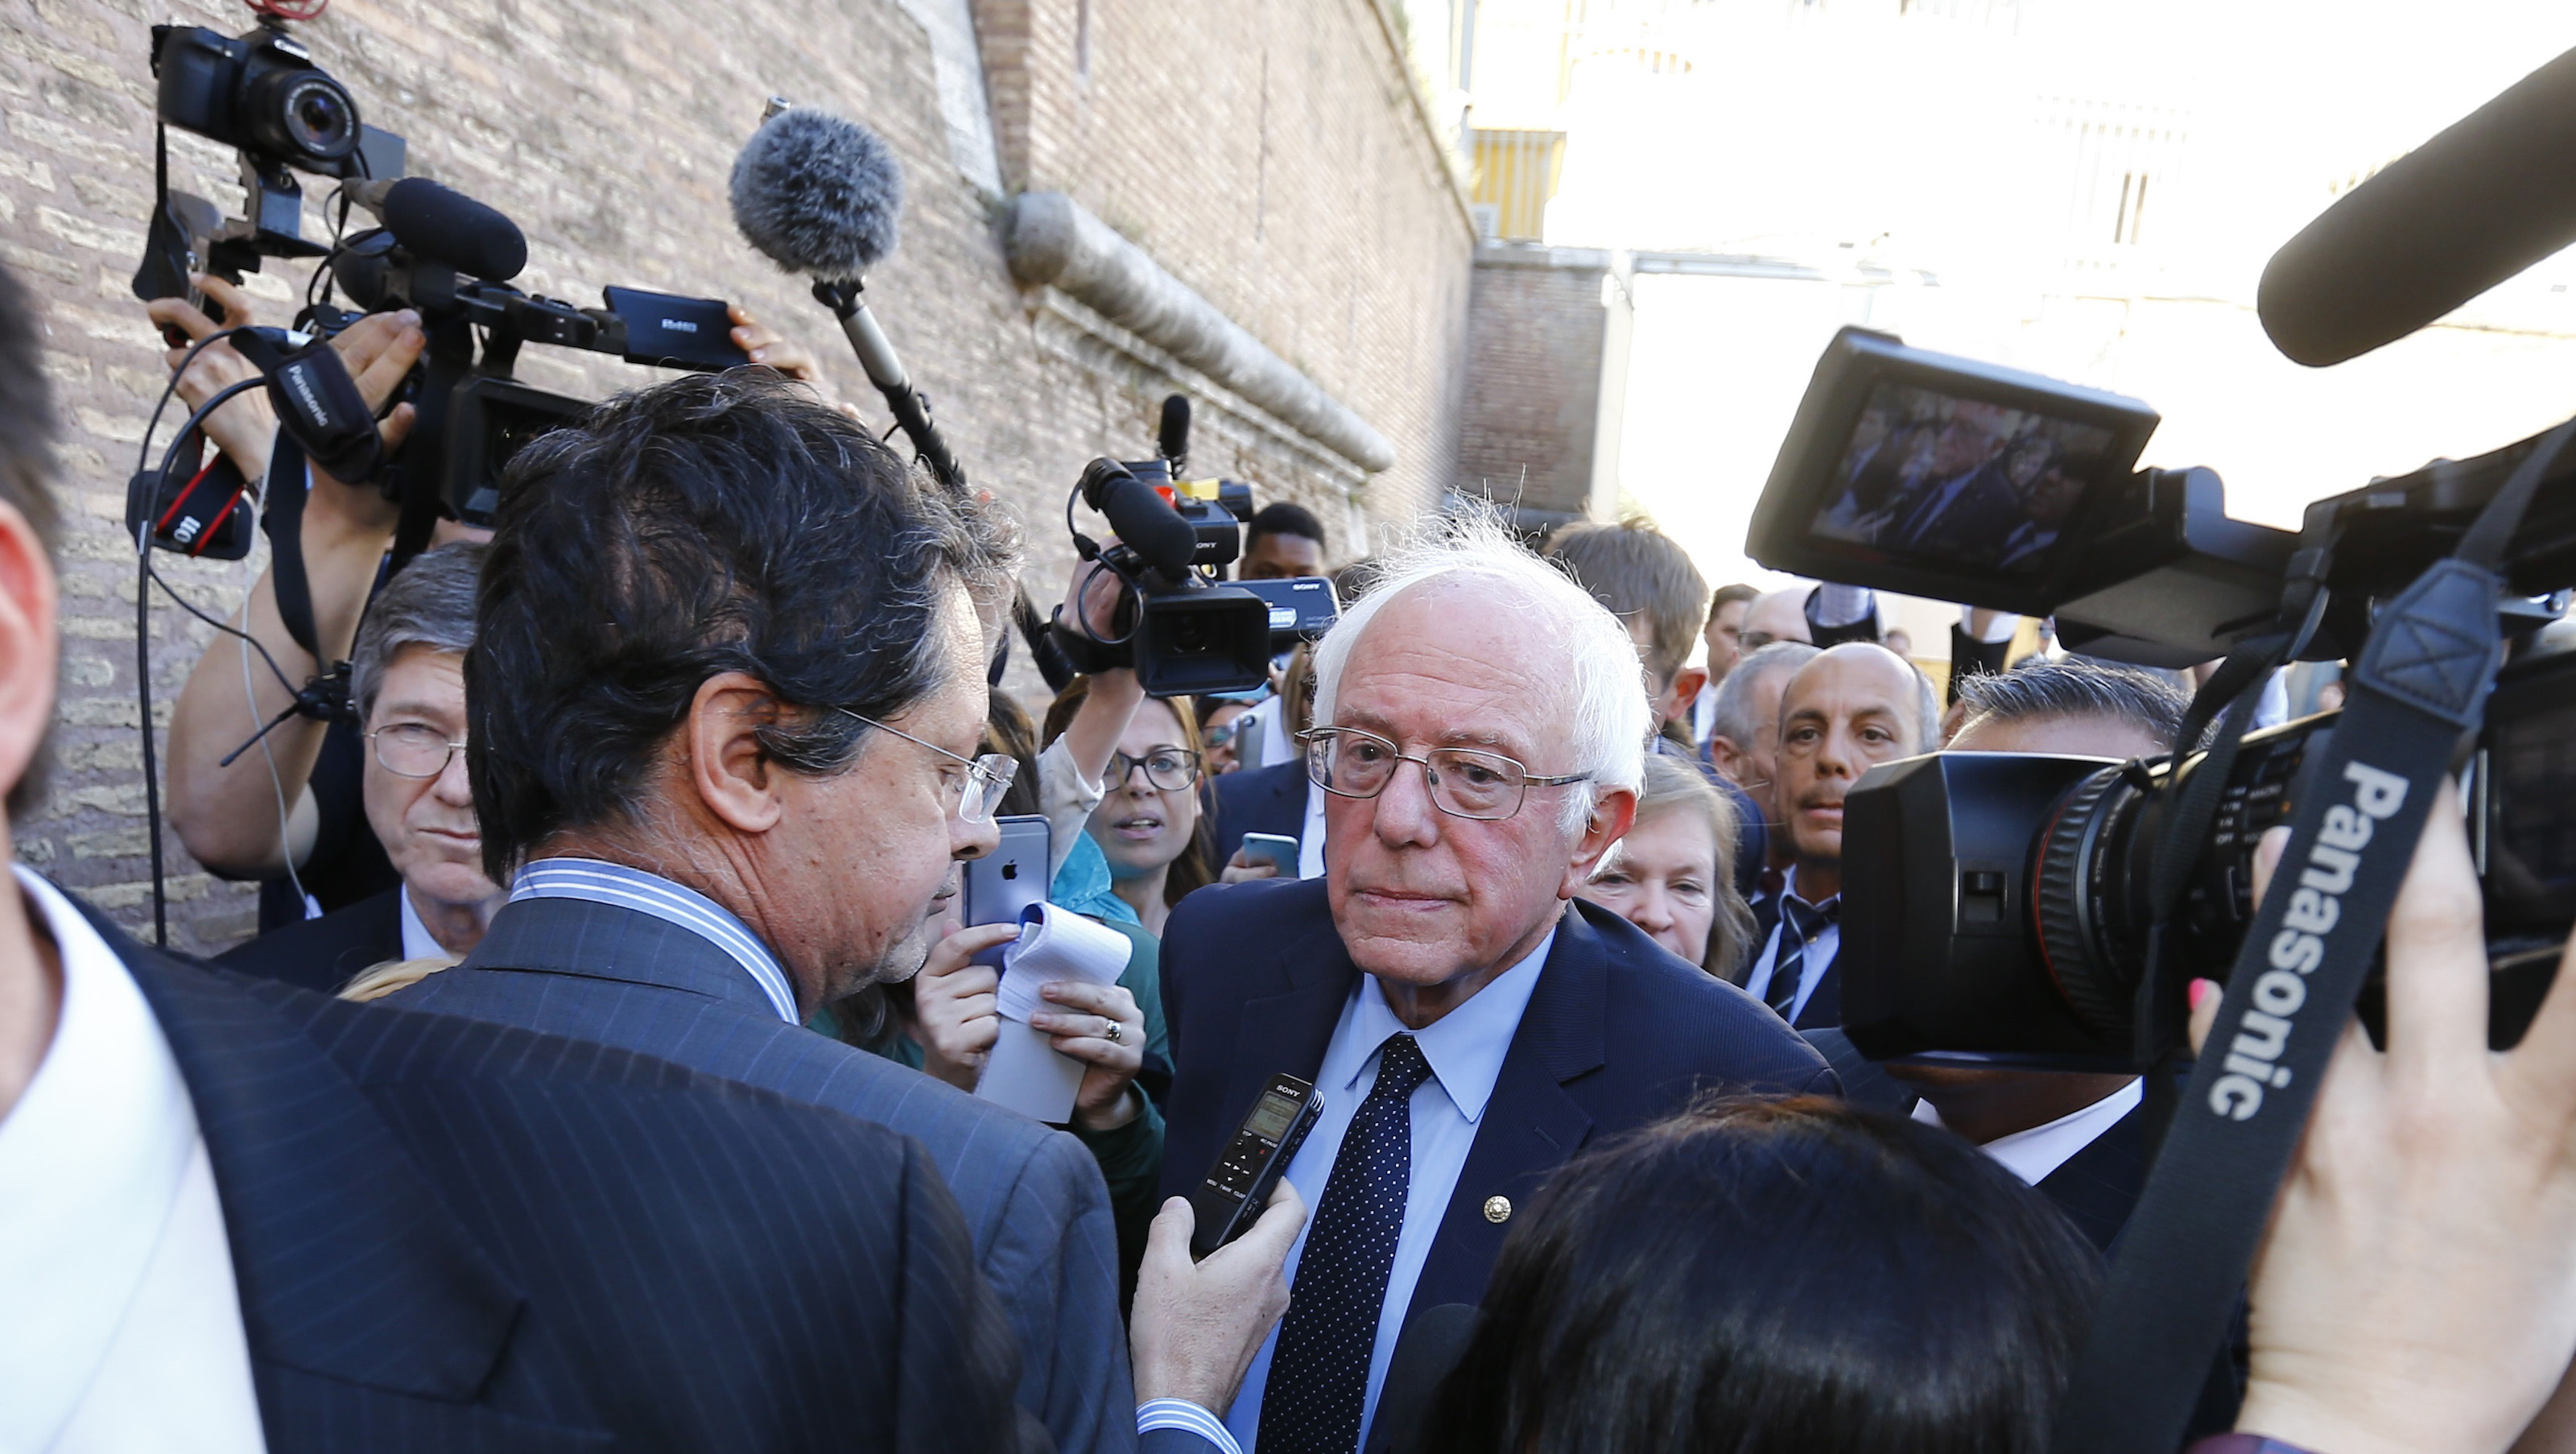 U.S. Democratic presidential candidate Bernie Sanders speaks with media and supporters during his visit to the Vatican , April 15, 2016.    REUTERS/Stefano Rellandini - RTX2A4MH